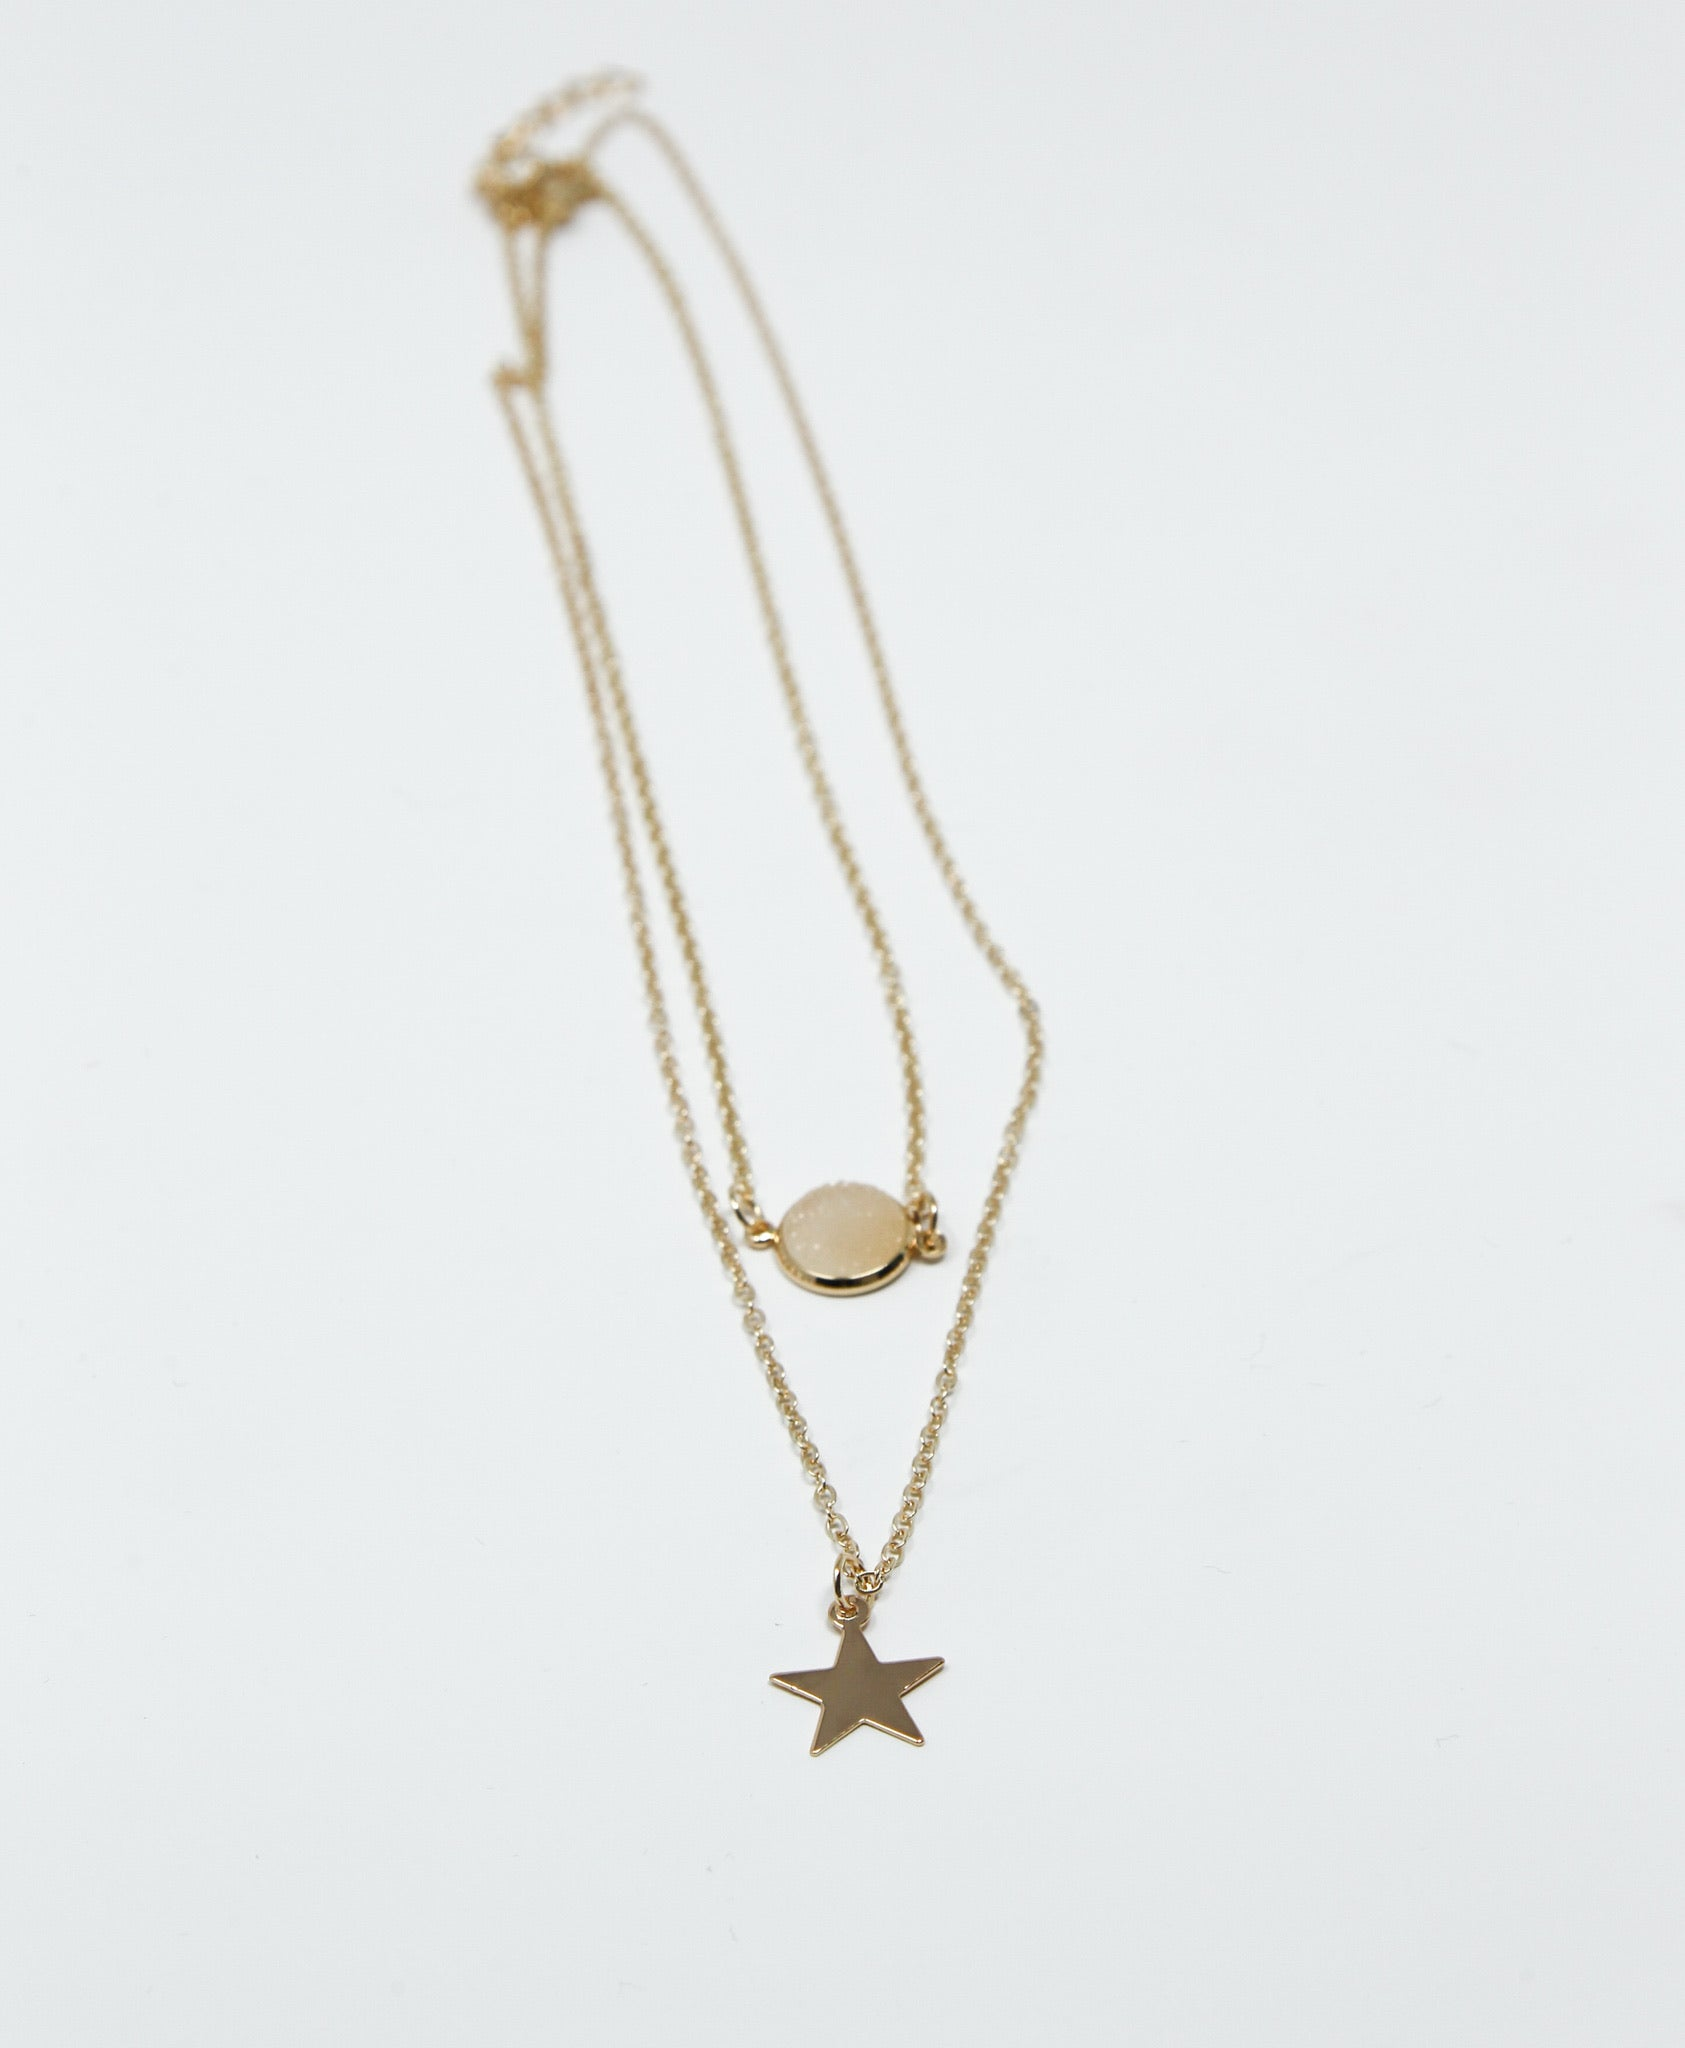 Star and Circle Double Chain Necklace